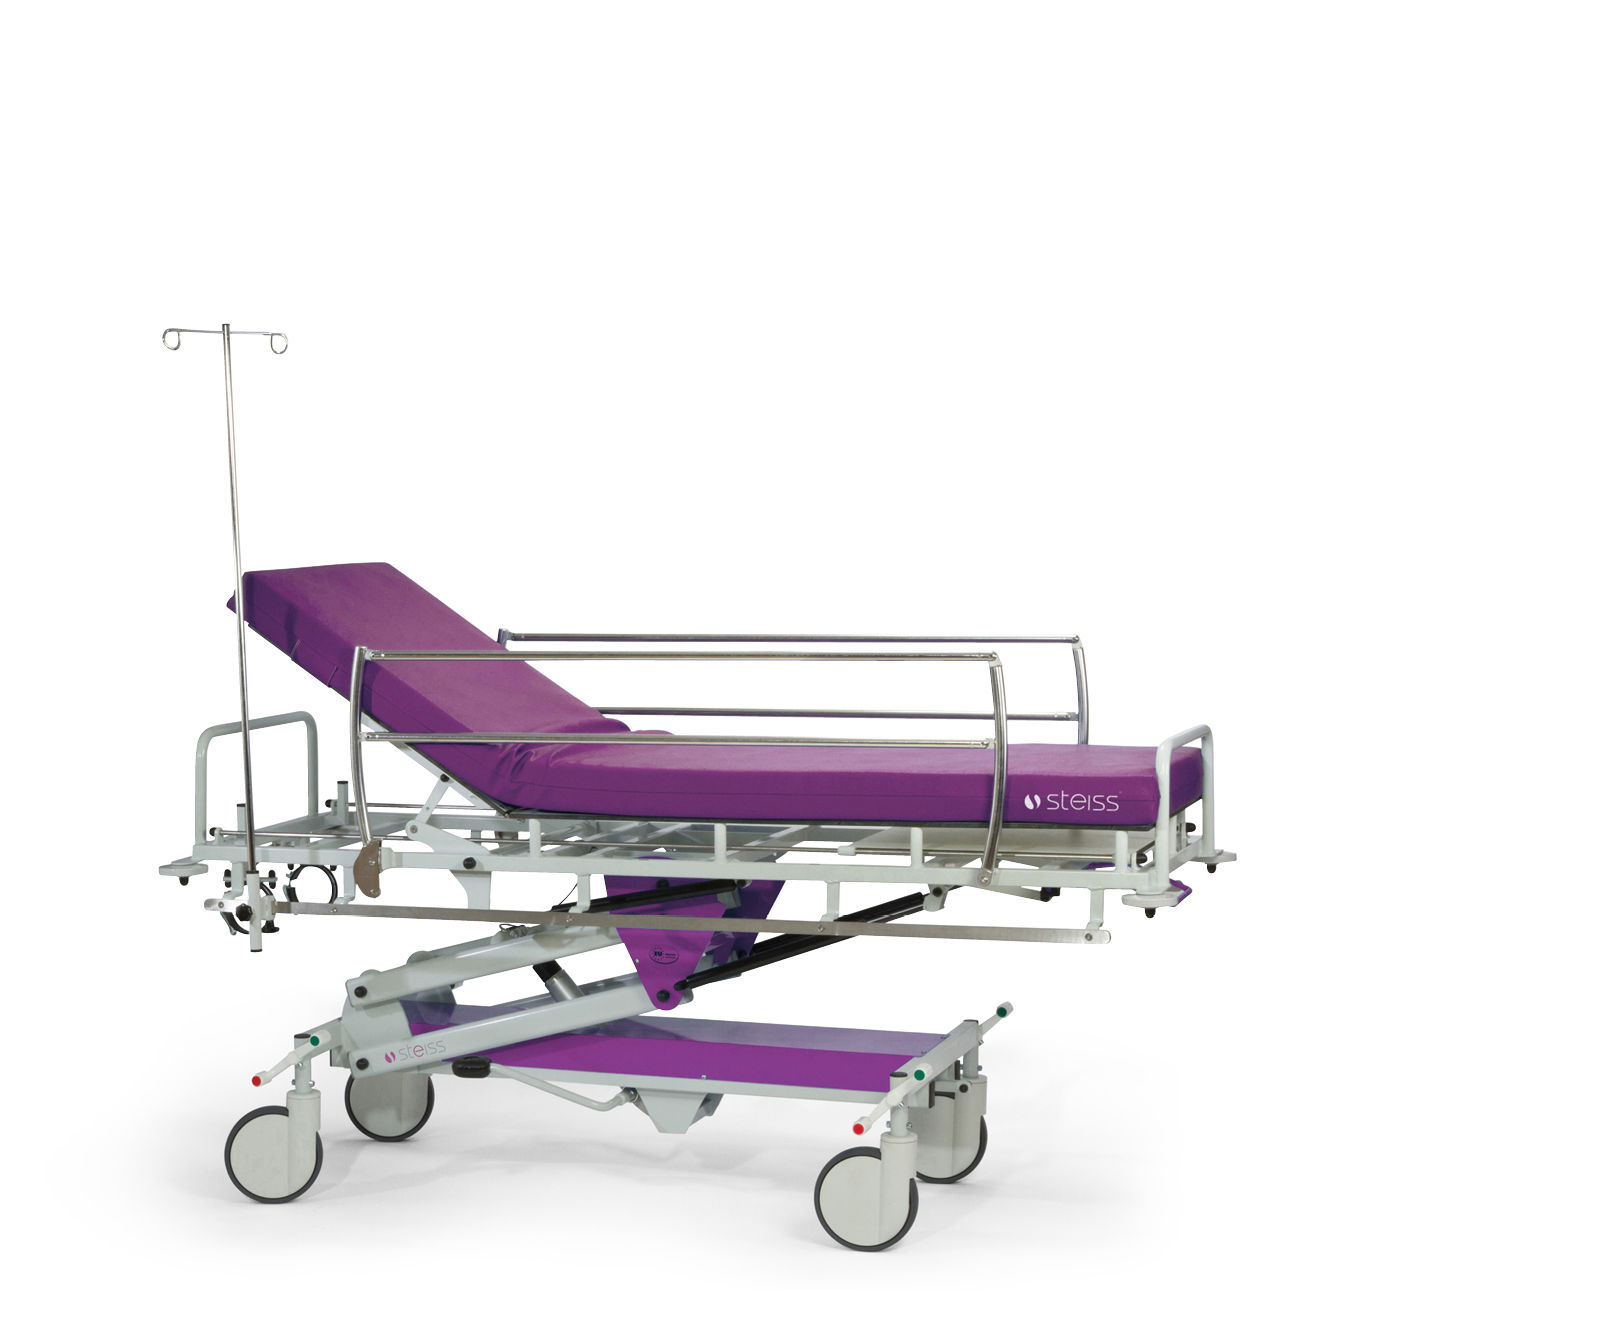 steiss-medical-branding-patient-trolley-the-great-field